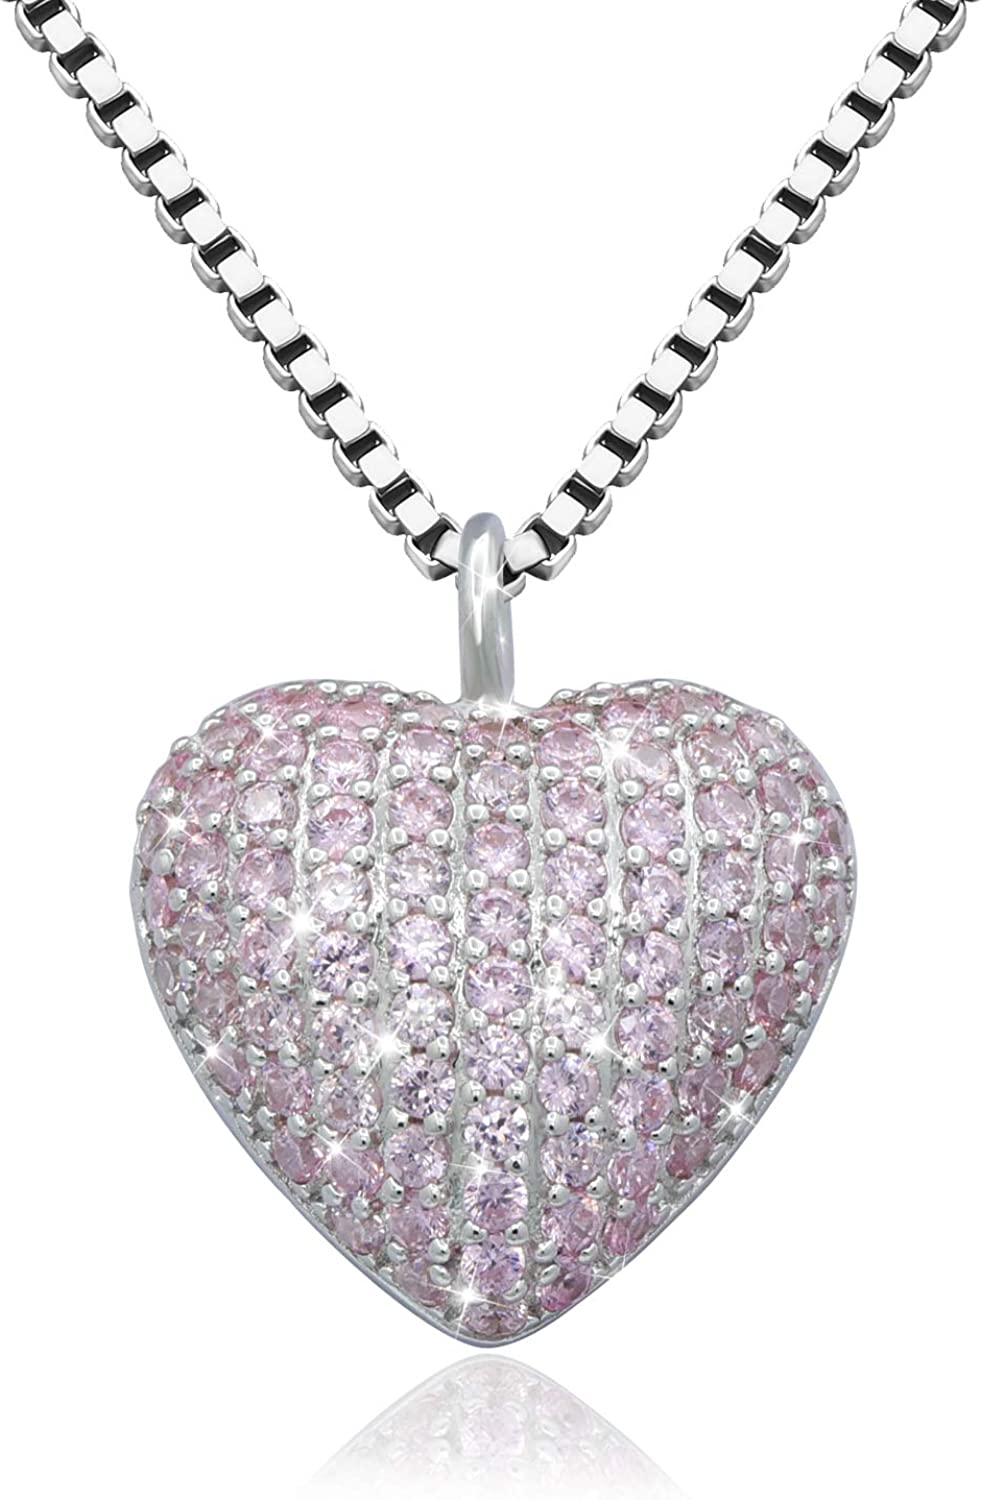 ACJFA Sterling Silver Urn Pendant Jewelry CZ Heart Cremation Necklace for Ashes - Forever in My Heart